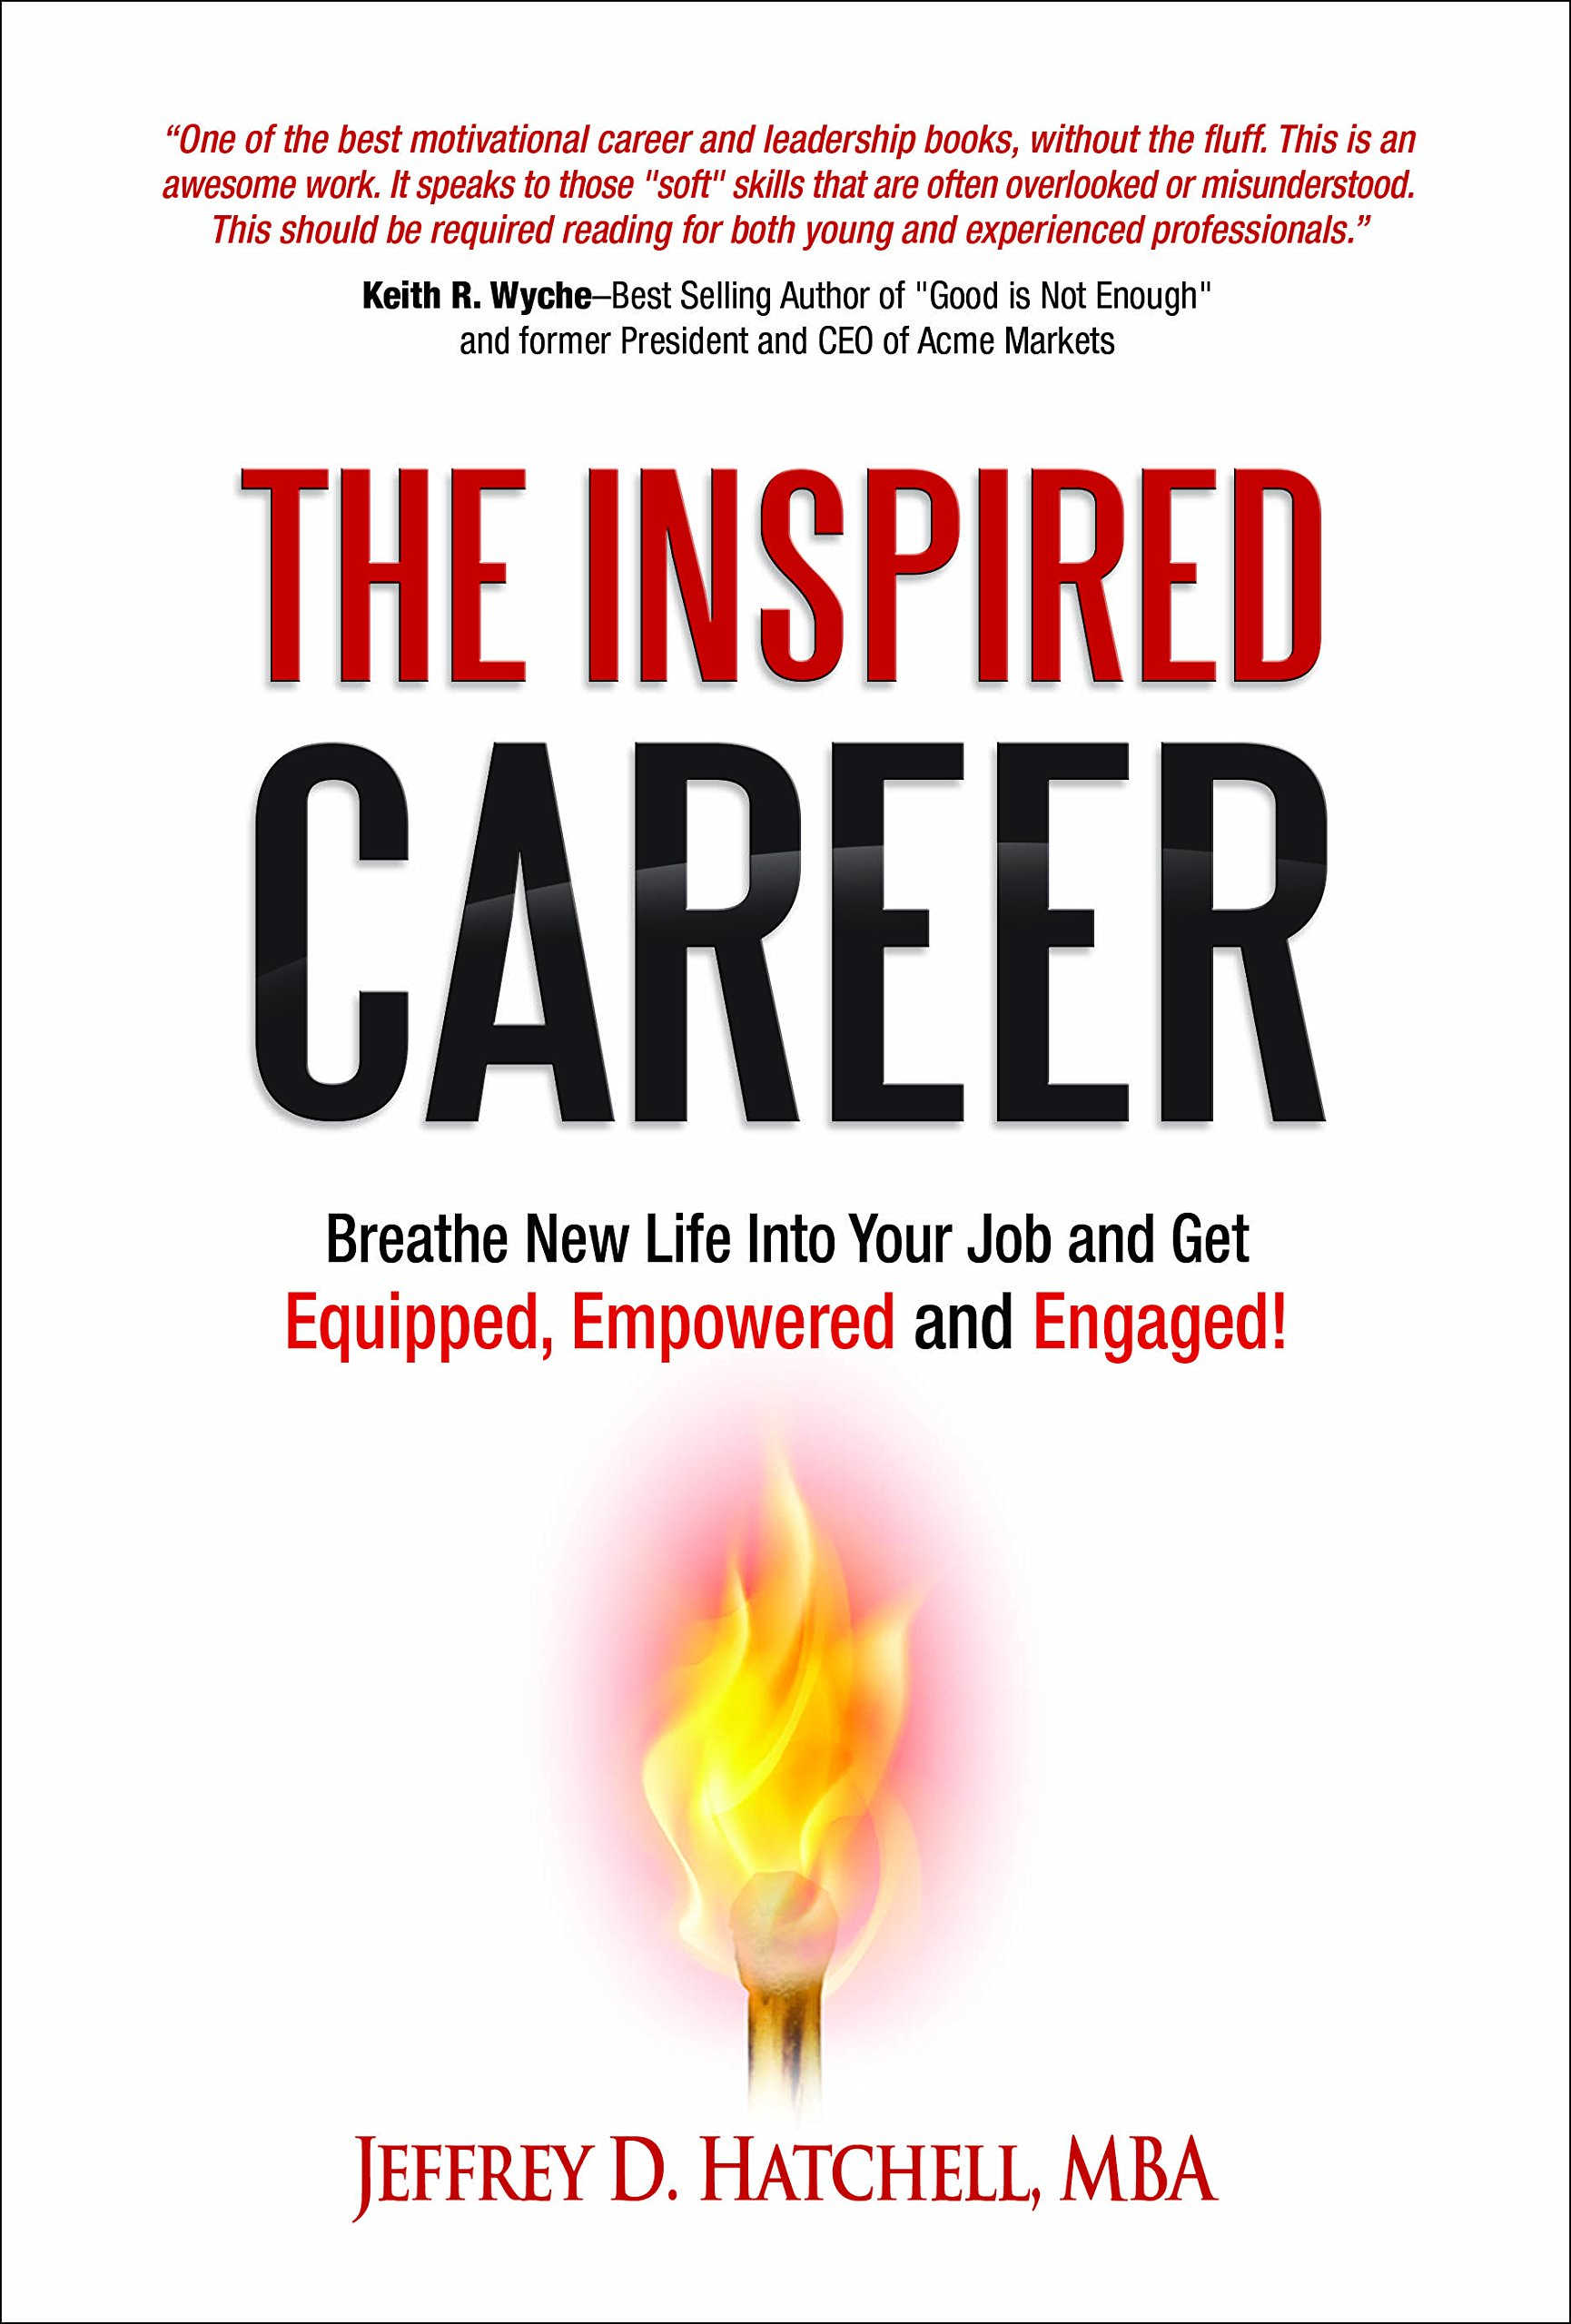 The Inspired Career: Breathe New Life Into Your Job and Get Equipped